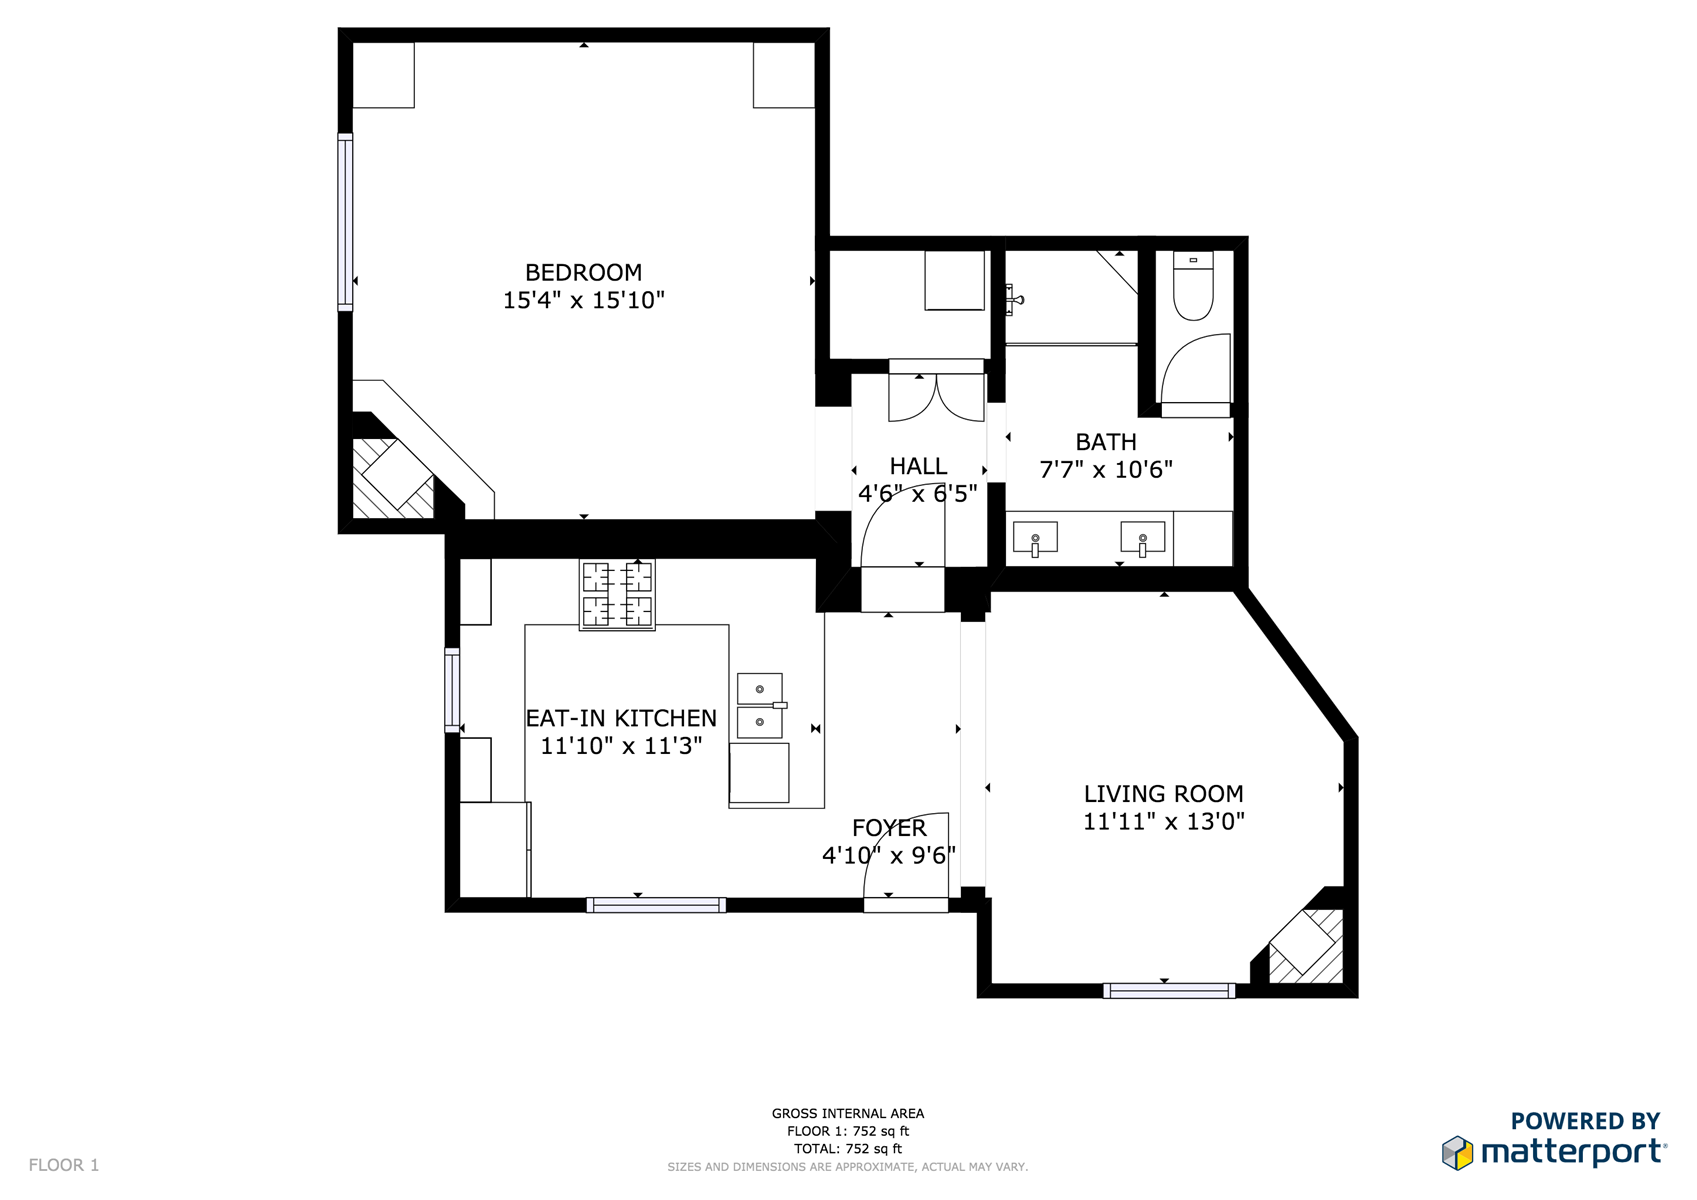 Floor Plan for Delgado B-2 - 1 Bed / 1 Bath, Luxury Casita